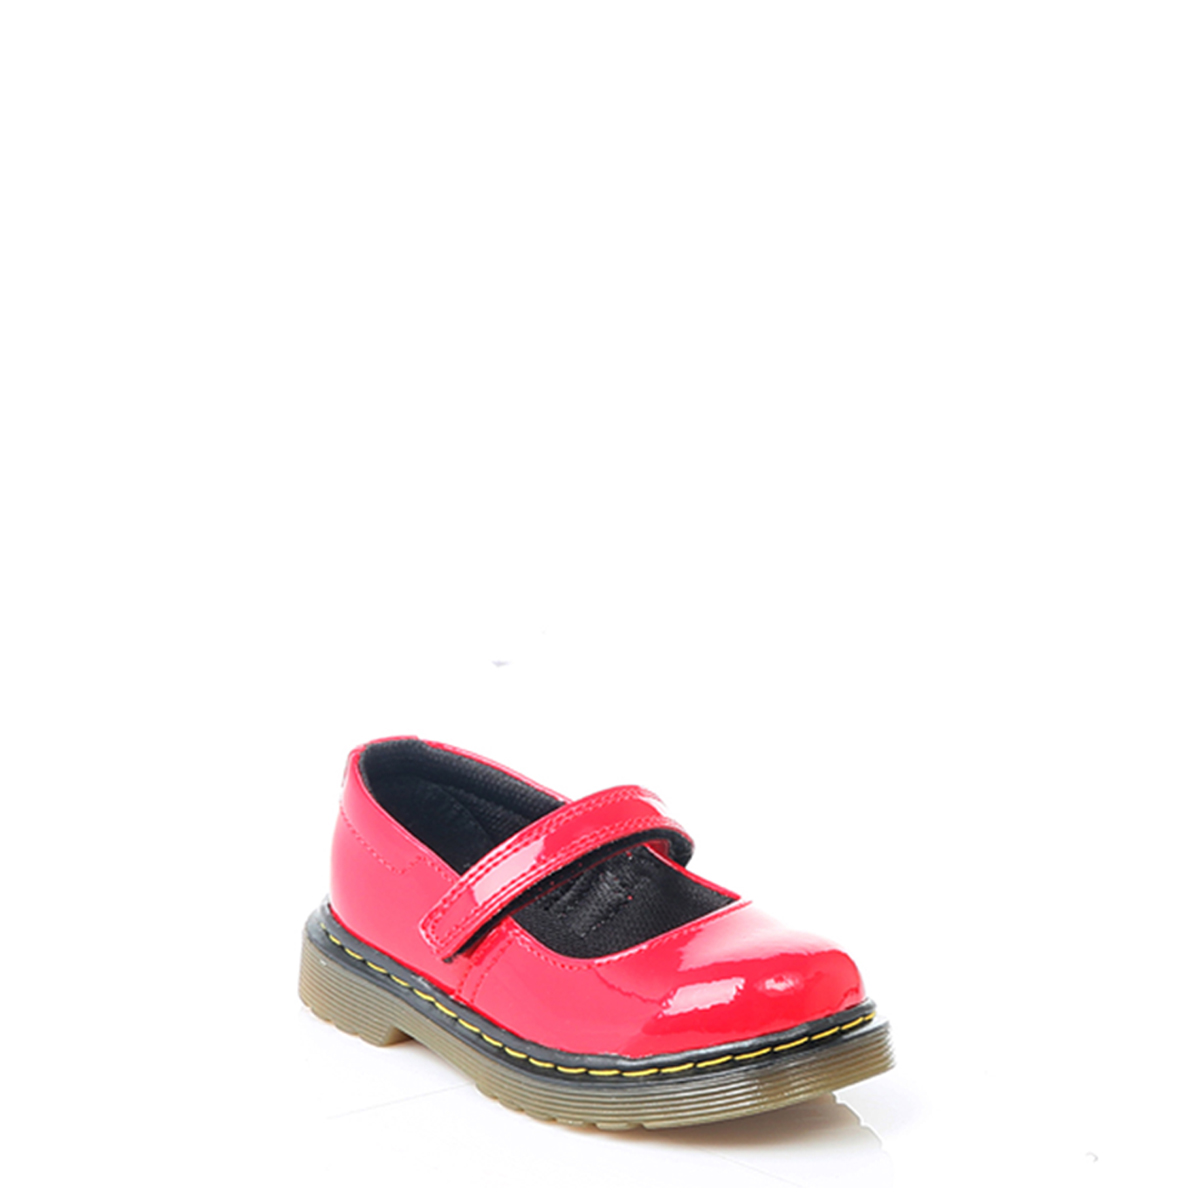 Red Patent Leather Shoes For Infants